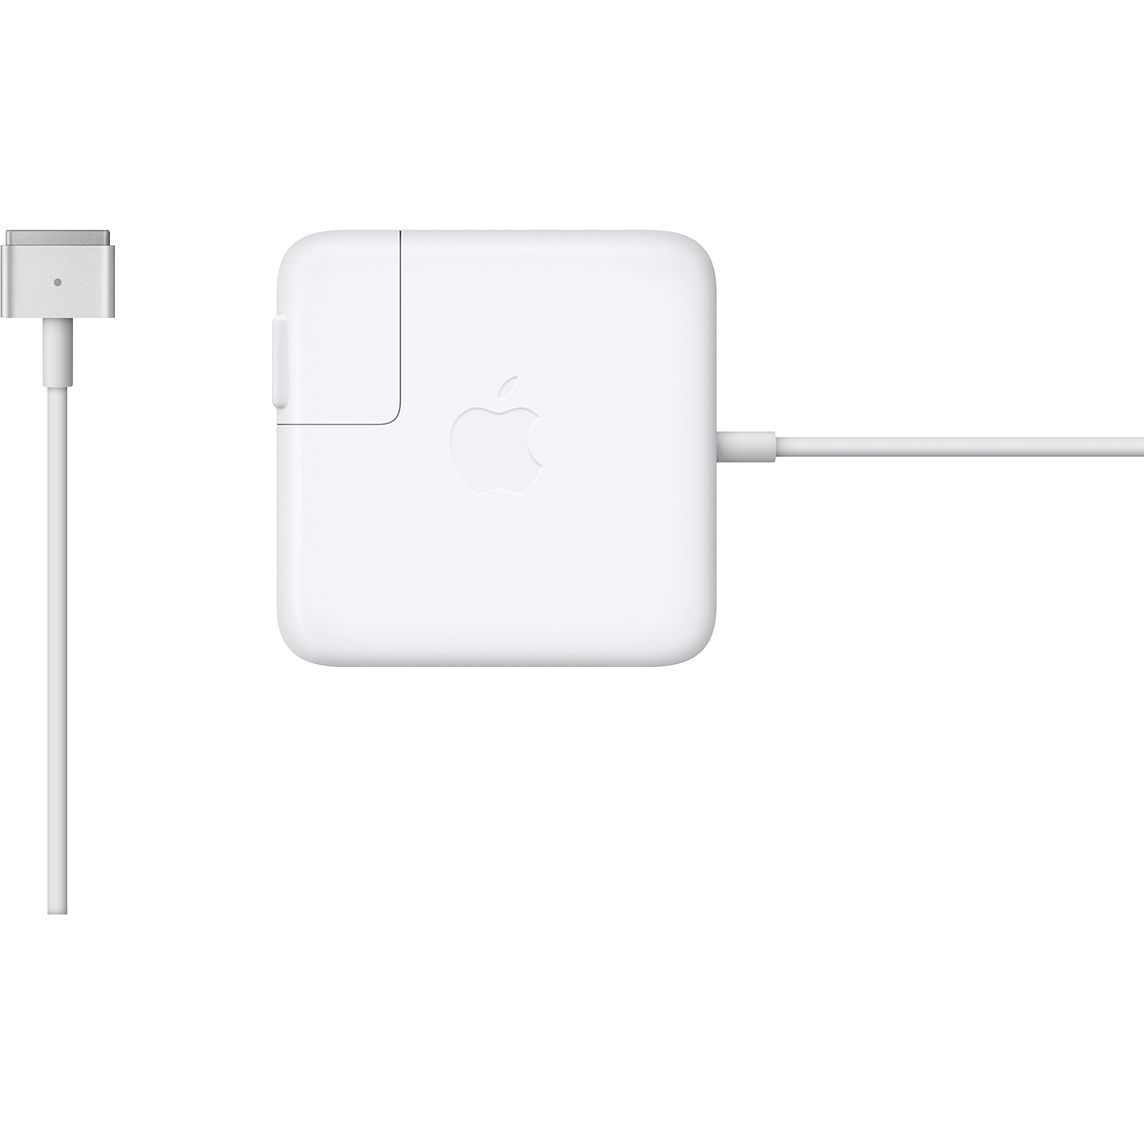 OEM MacBook Magsafe 2 Charger 45w, 60w, & 85w